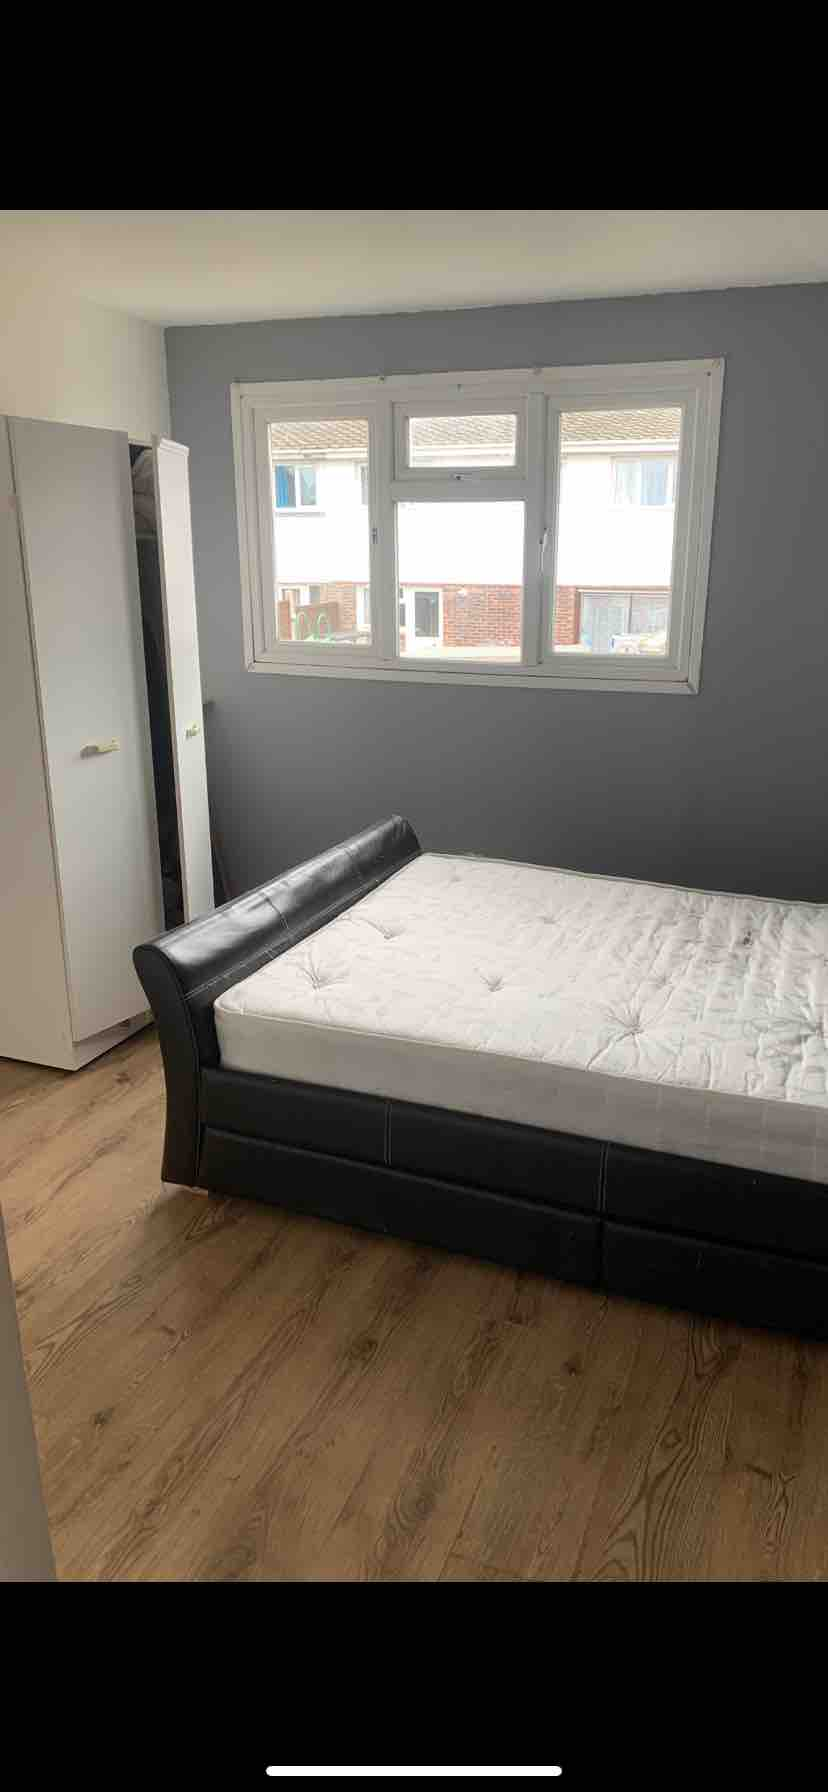 1 room in Broadfield, London, RH11 9JS RoomsLocal image